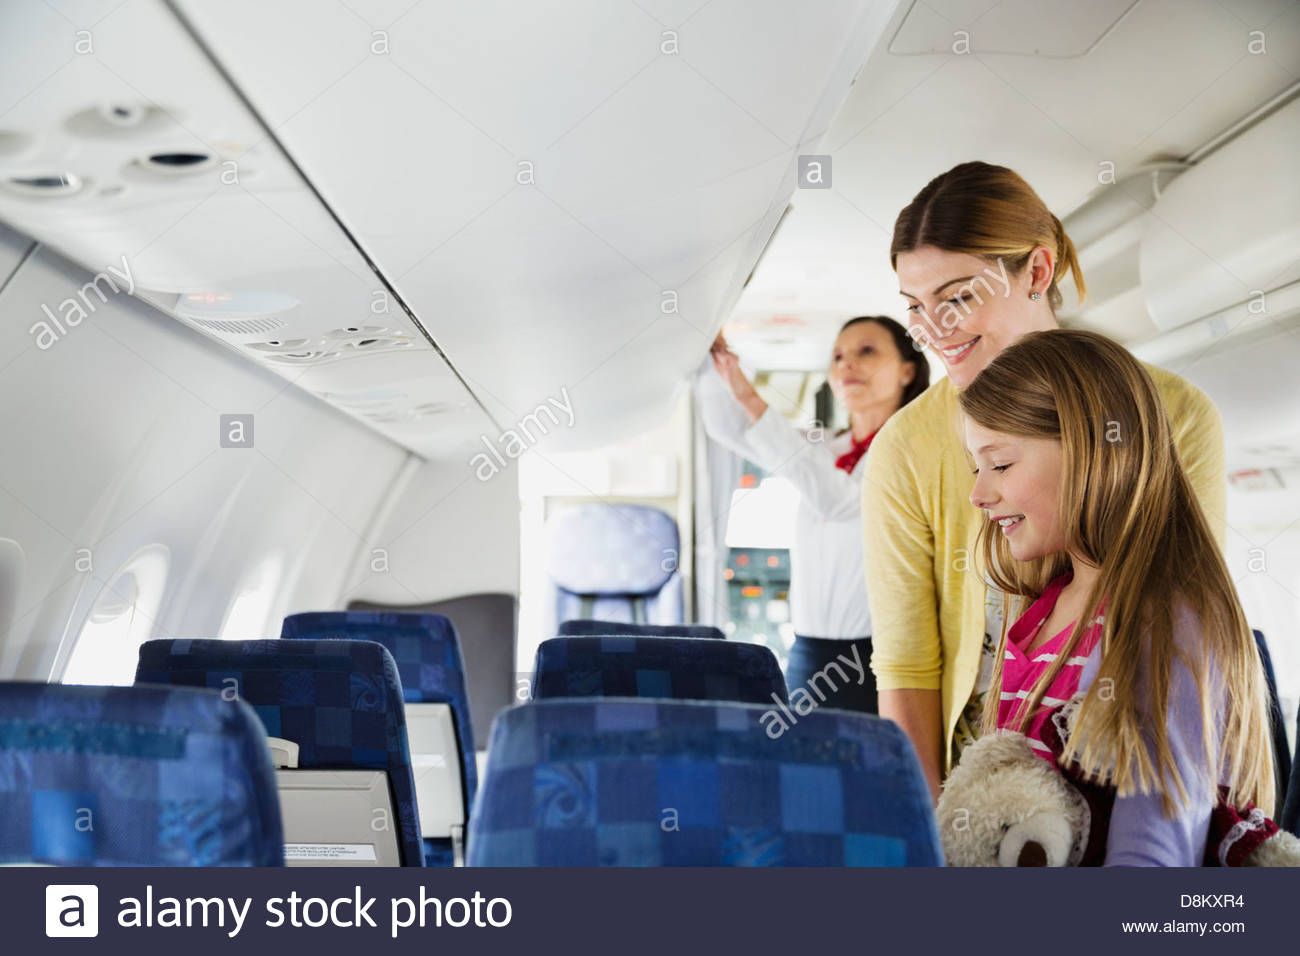 Woman and daughter finding their seats in airplane - Stock Image